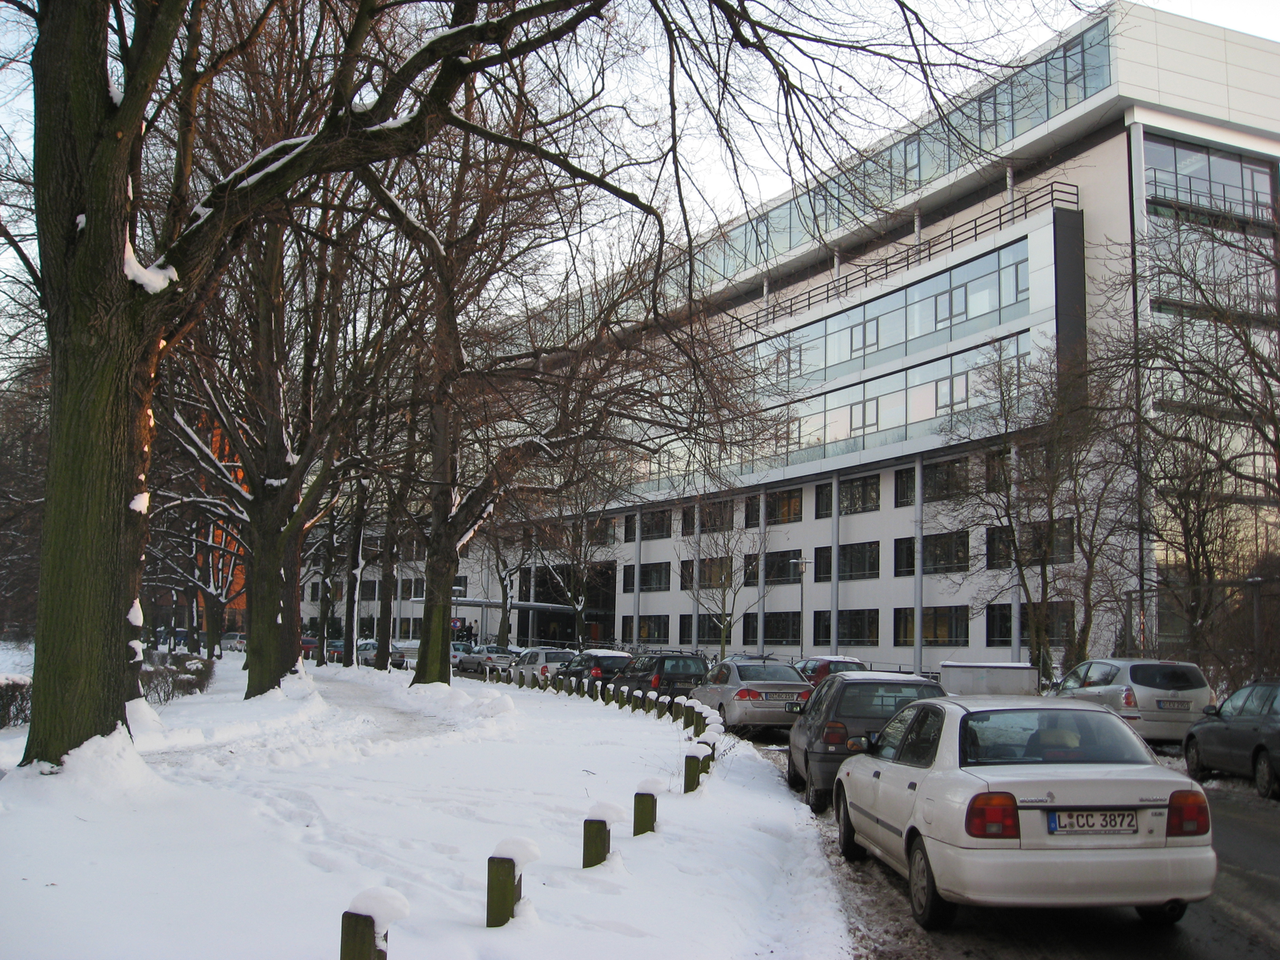 1280px-Max_Planck_Institute_for_Evolutionary_Anthropology